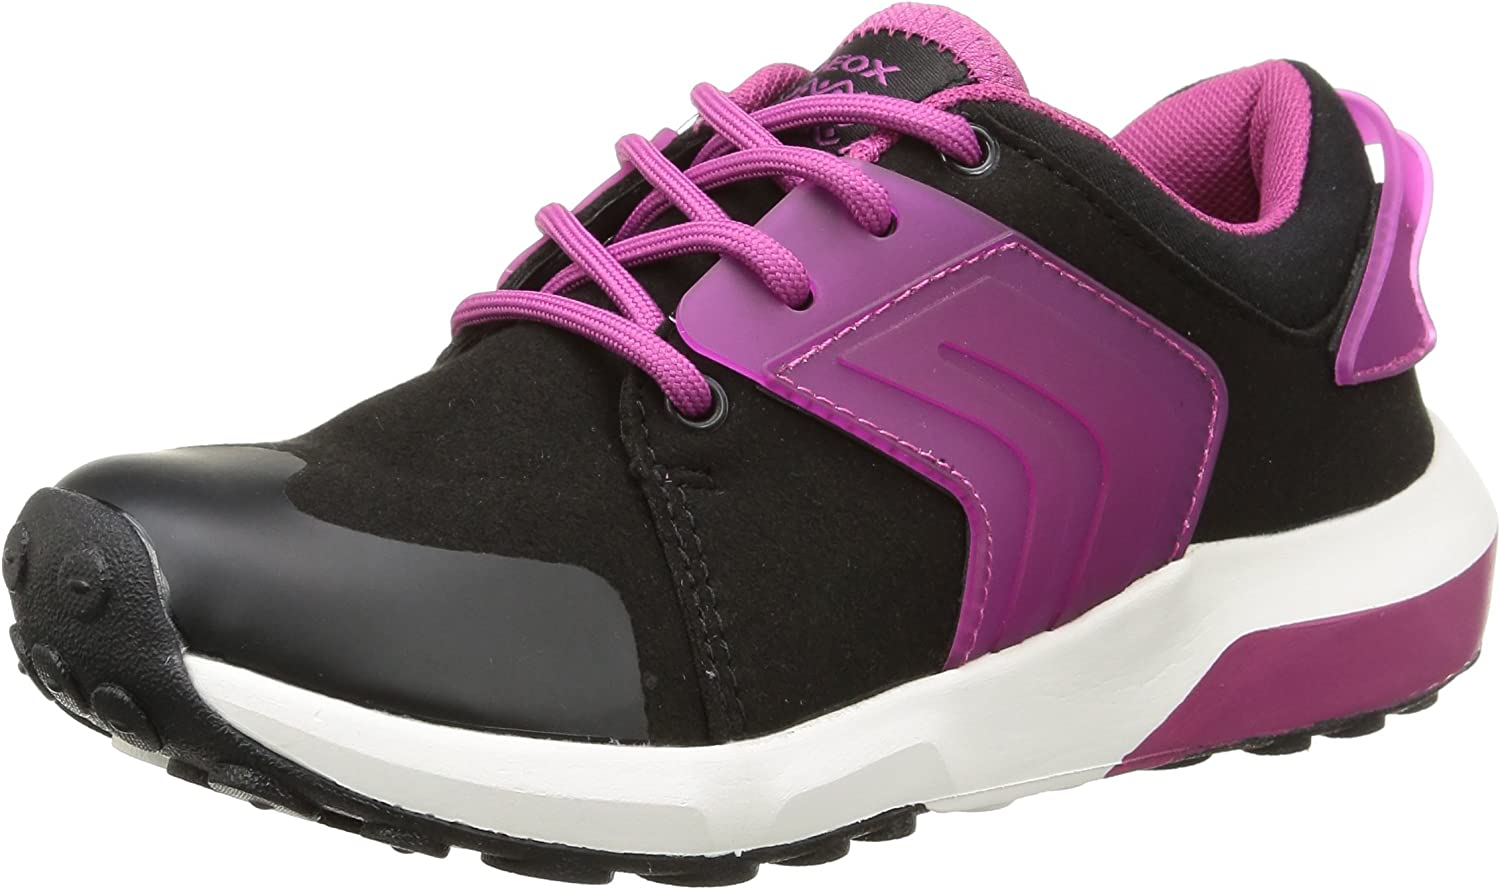 GEOX J Asteroid G Girls Trainers shoes - Black Fuchsia